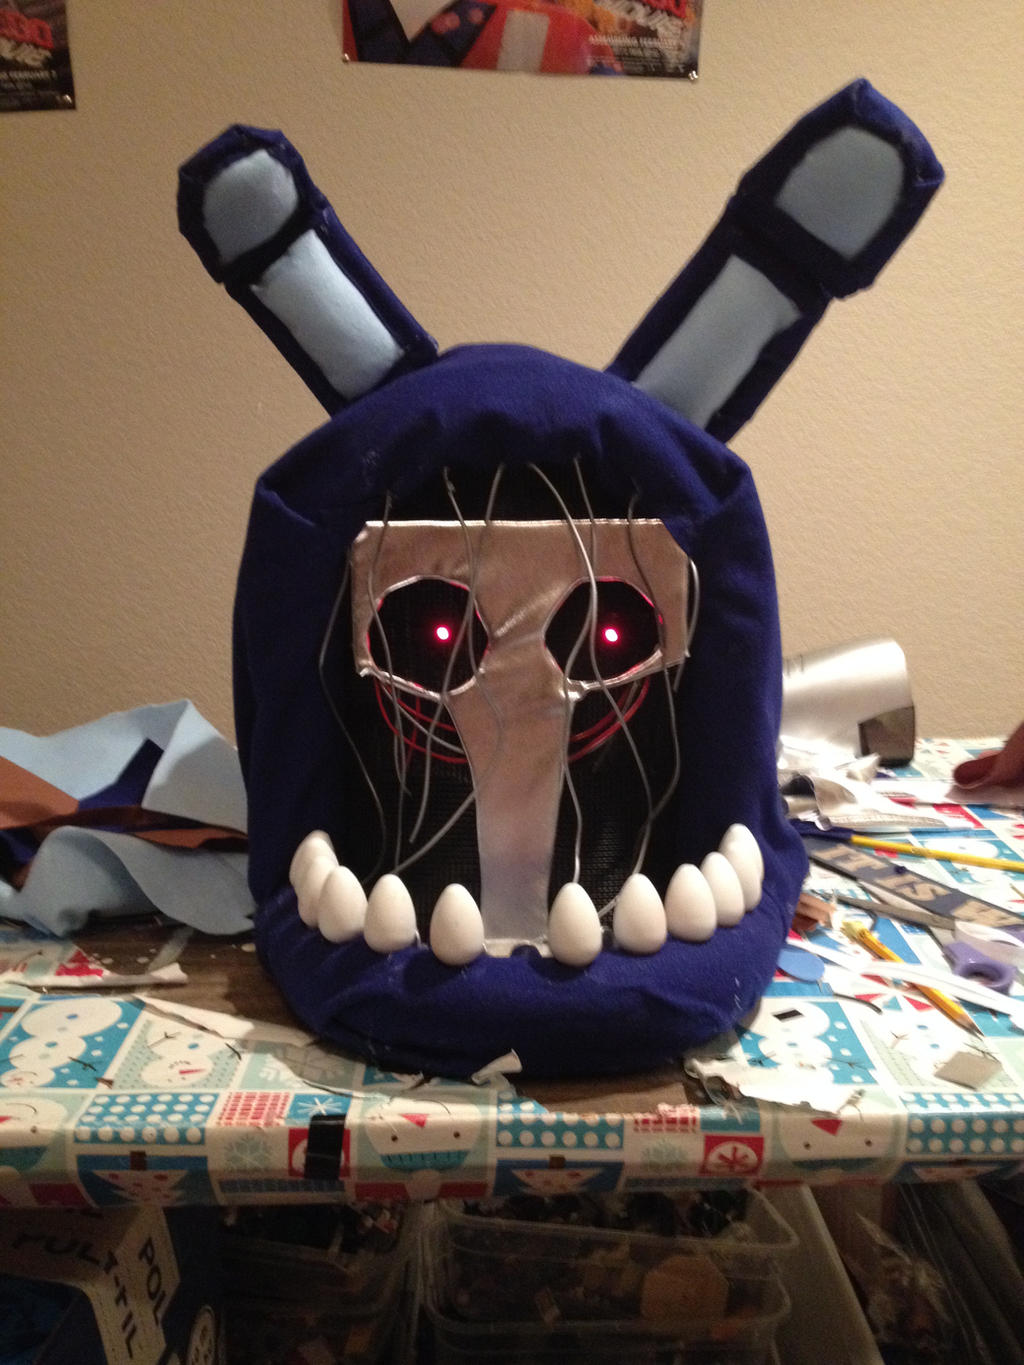 F fnaf bonnie costume for sale - Withered Bonnie Costume Images Reverse Search Withered Bonnie Costume Images Reverse Search